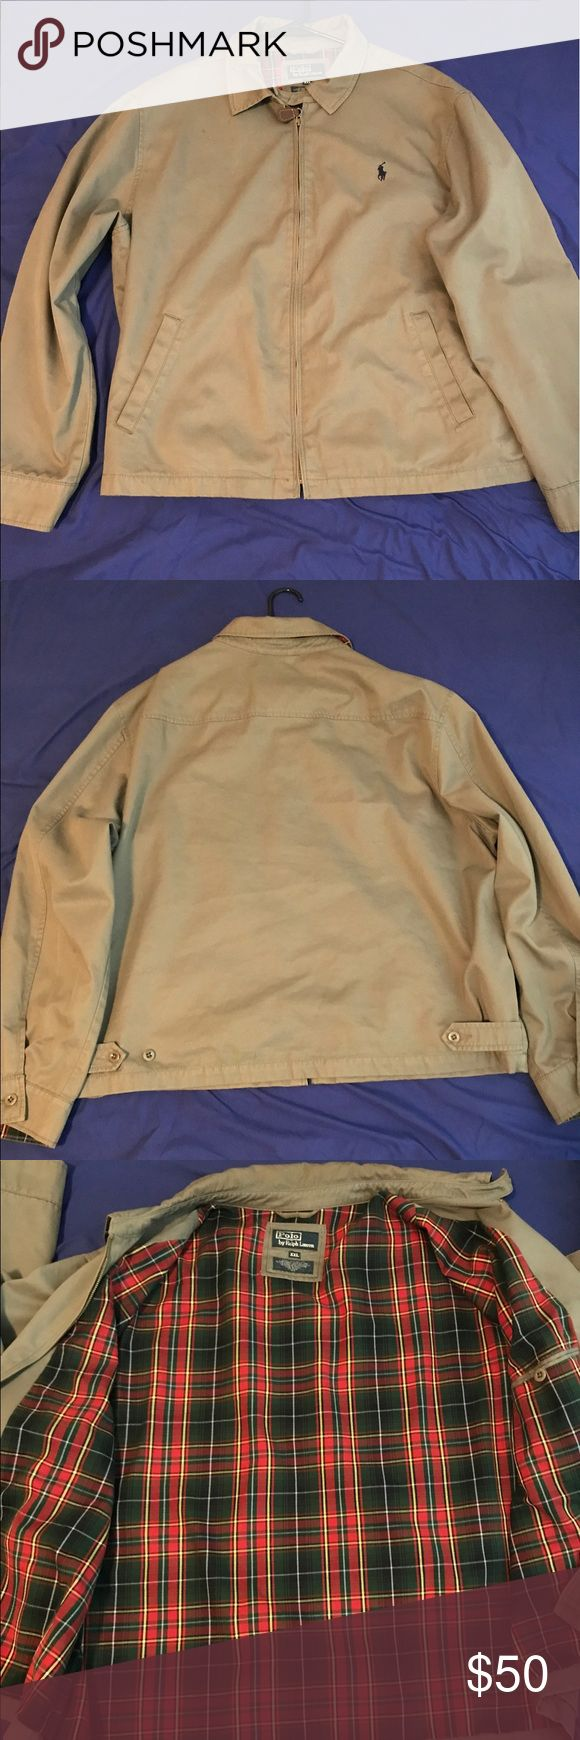 Ralph Lauren Polo Jacket Ralph Lauren Polo Jacket, Worn 10x. Still In good condition. Can be worn inside out fresh prince style. Polo by Ralph Lauren Jackets & Coats Lightweight & Shirt Jackets